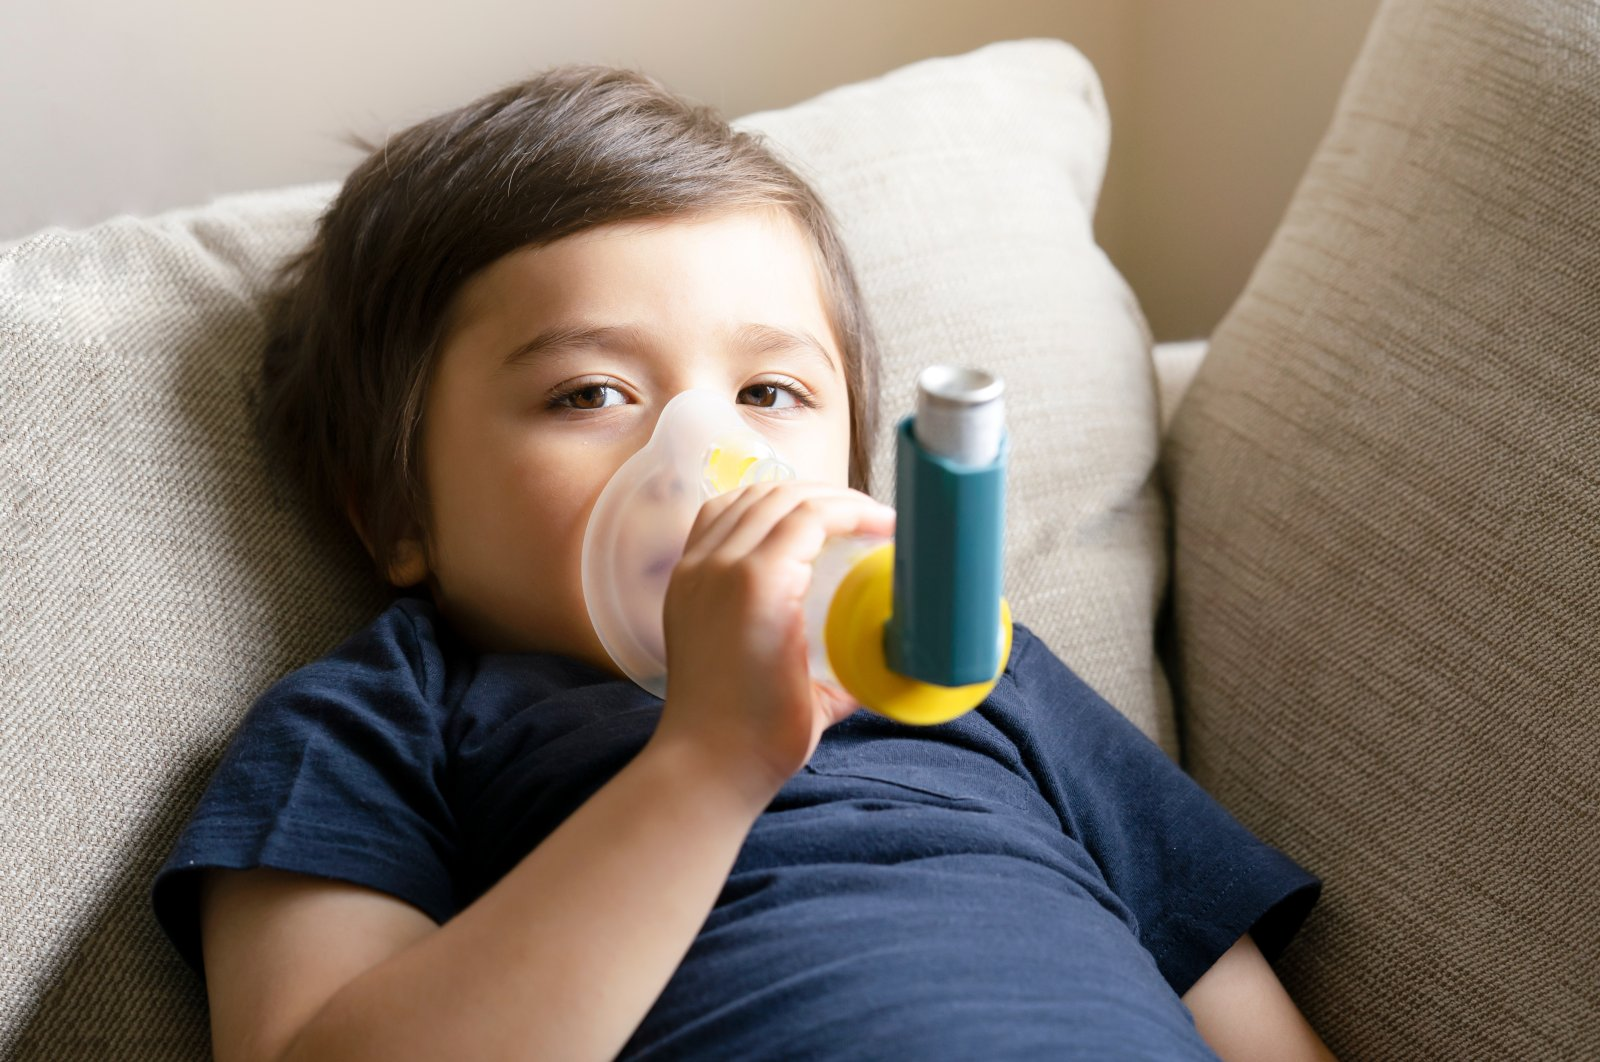 Taking place on May 4 every year, World Asthma Day aims to raise awareness about this chronic disease. (Shutterstock Photo)